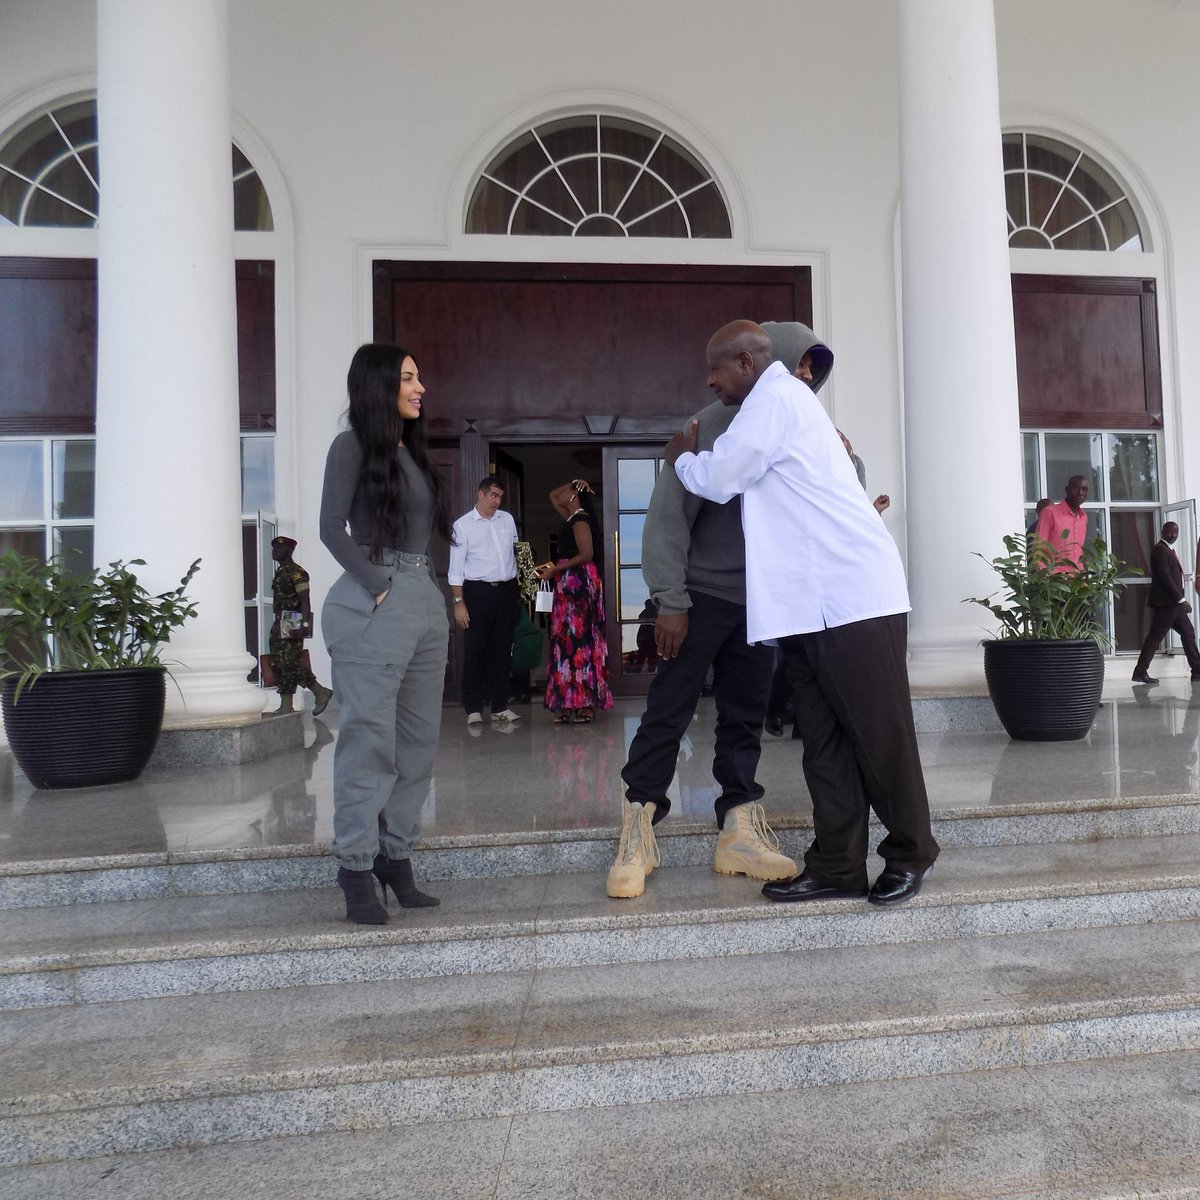 Respect! @KagutaMuseveni and @kanyewest hug at the end of their meeting. @KimKardashian smiles approvingly.<br>http://pic.twitter.com/FKoLlWSs4O